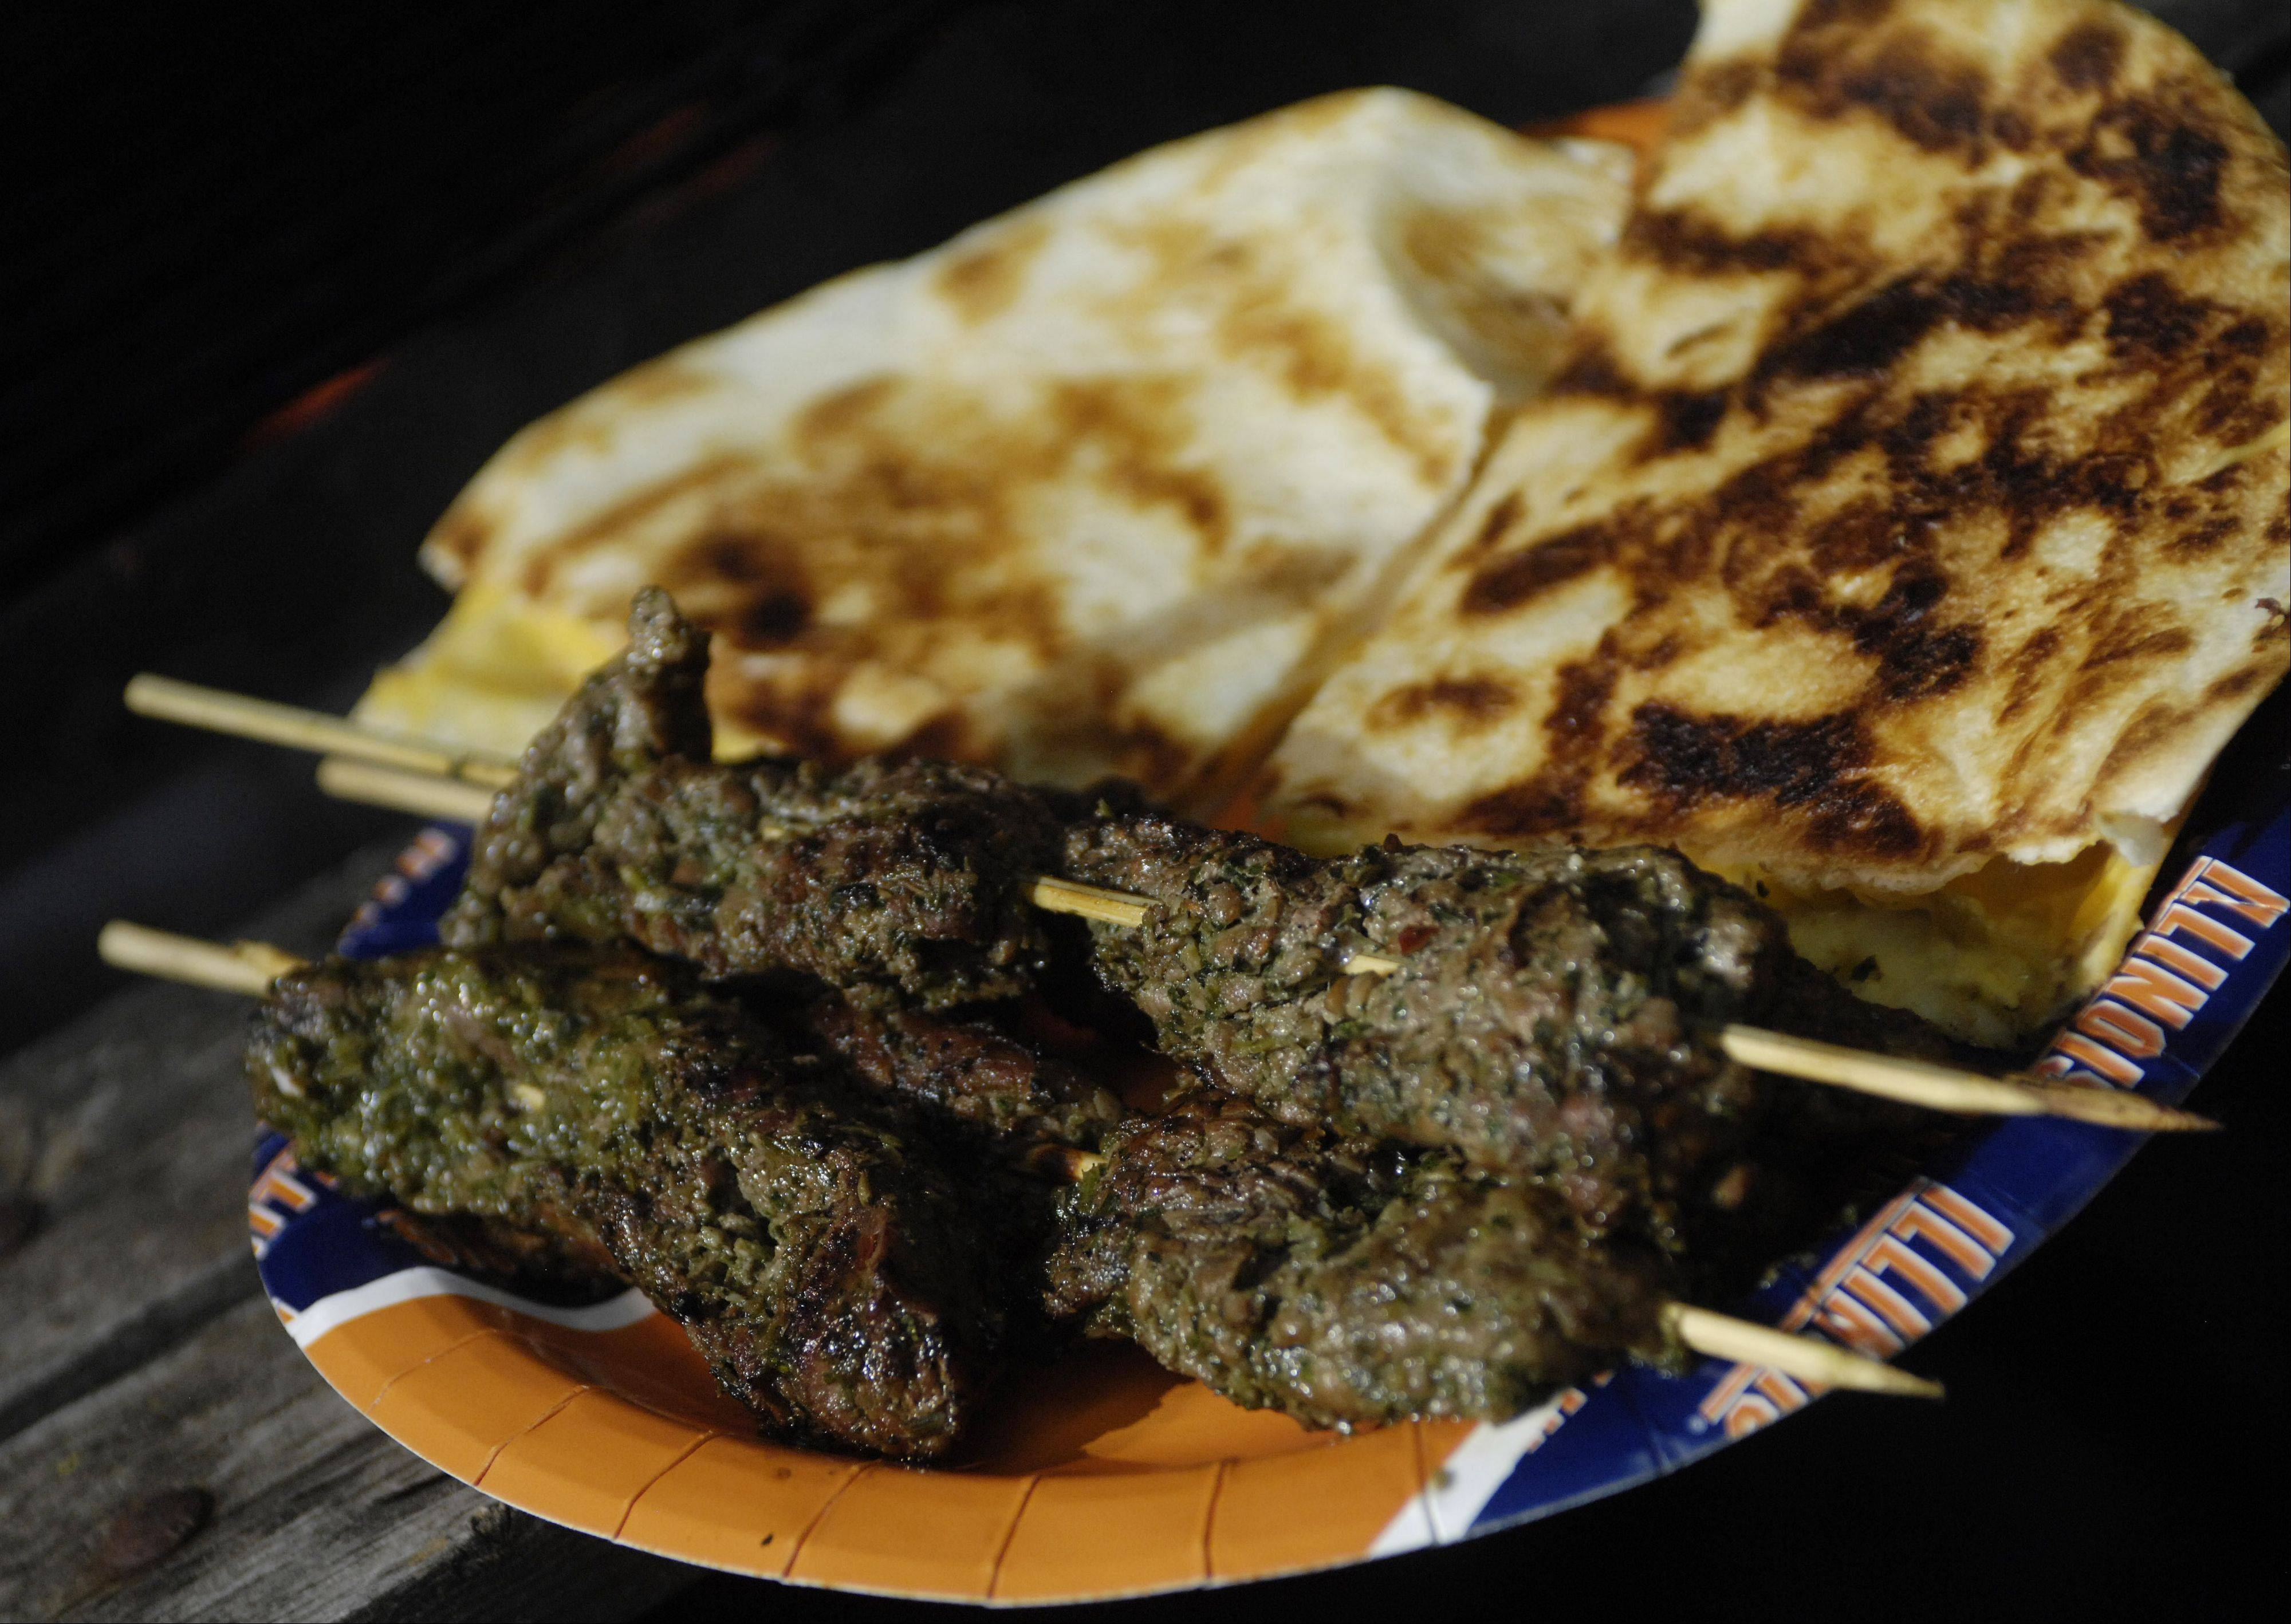 Michael Pennisi created a chimichurri-style sauce for beef skewers and serve the skewers with cumin-spiced quesadillas.